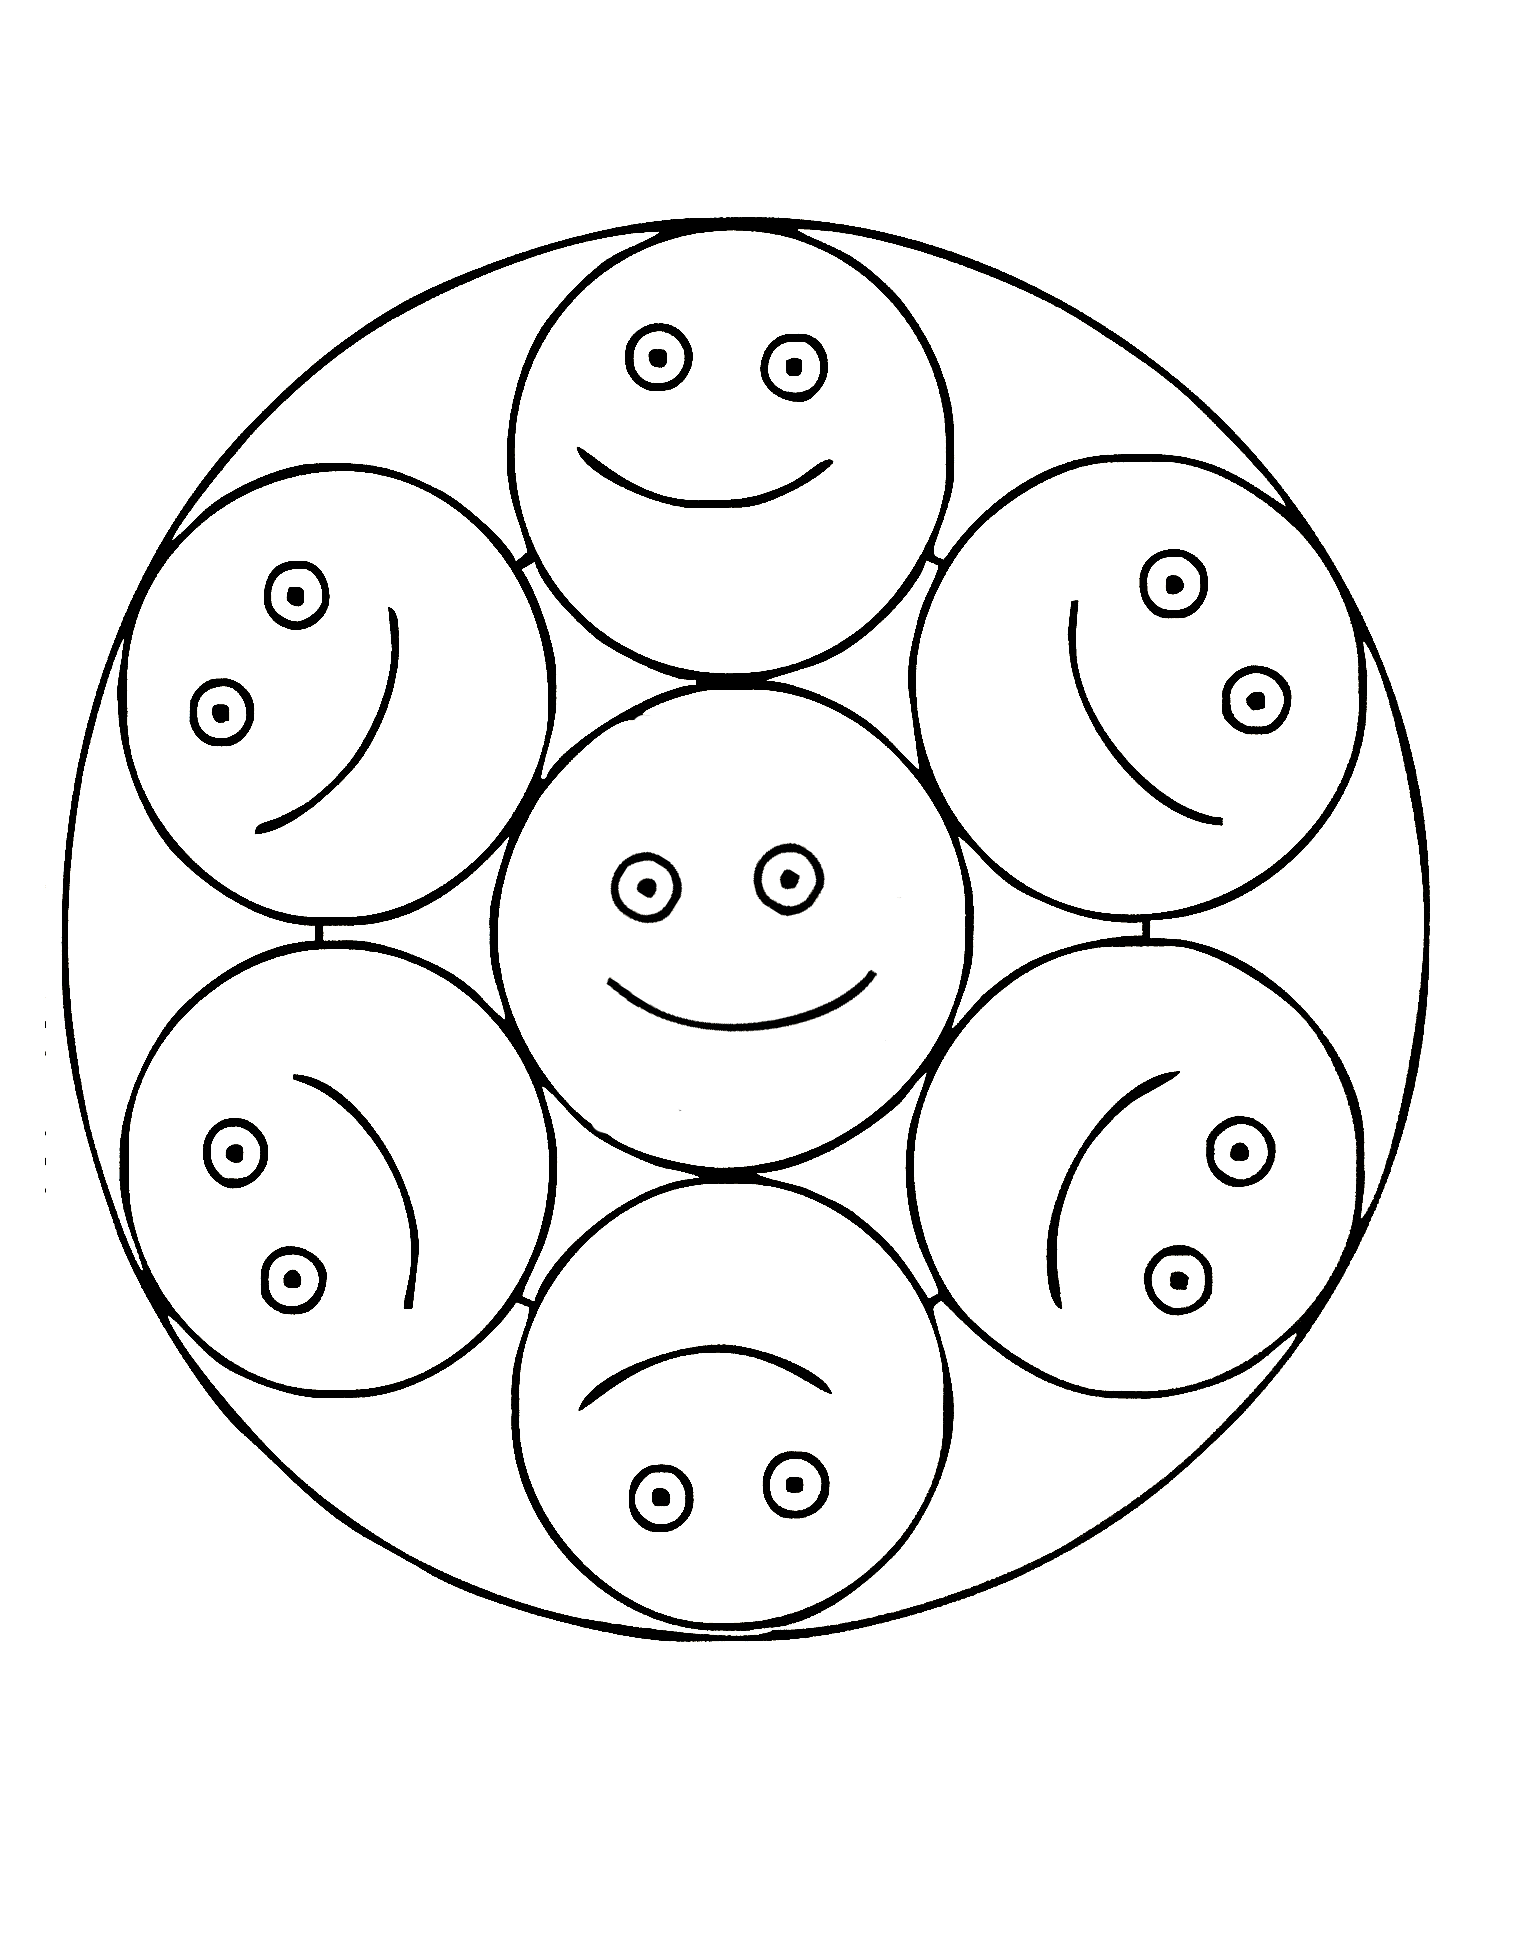 smiley mandala coloring page for children from the gallery characters - Animal Mandala Coloring Pages Easy